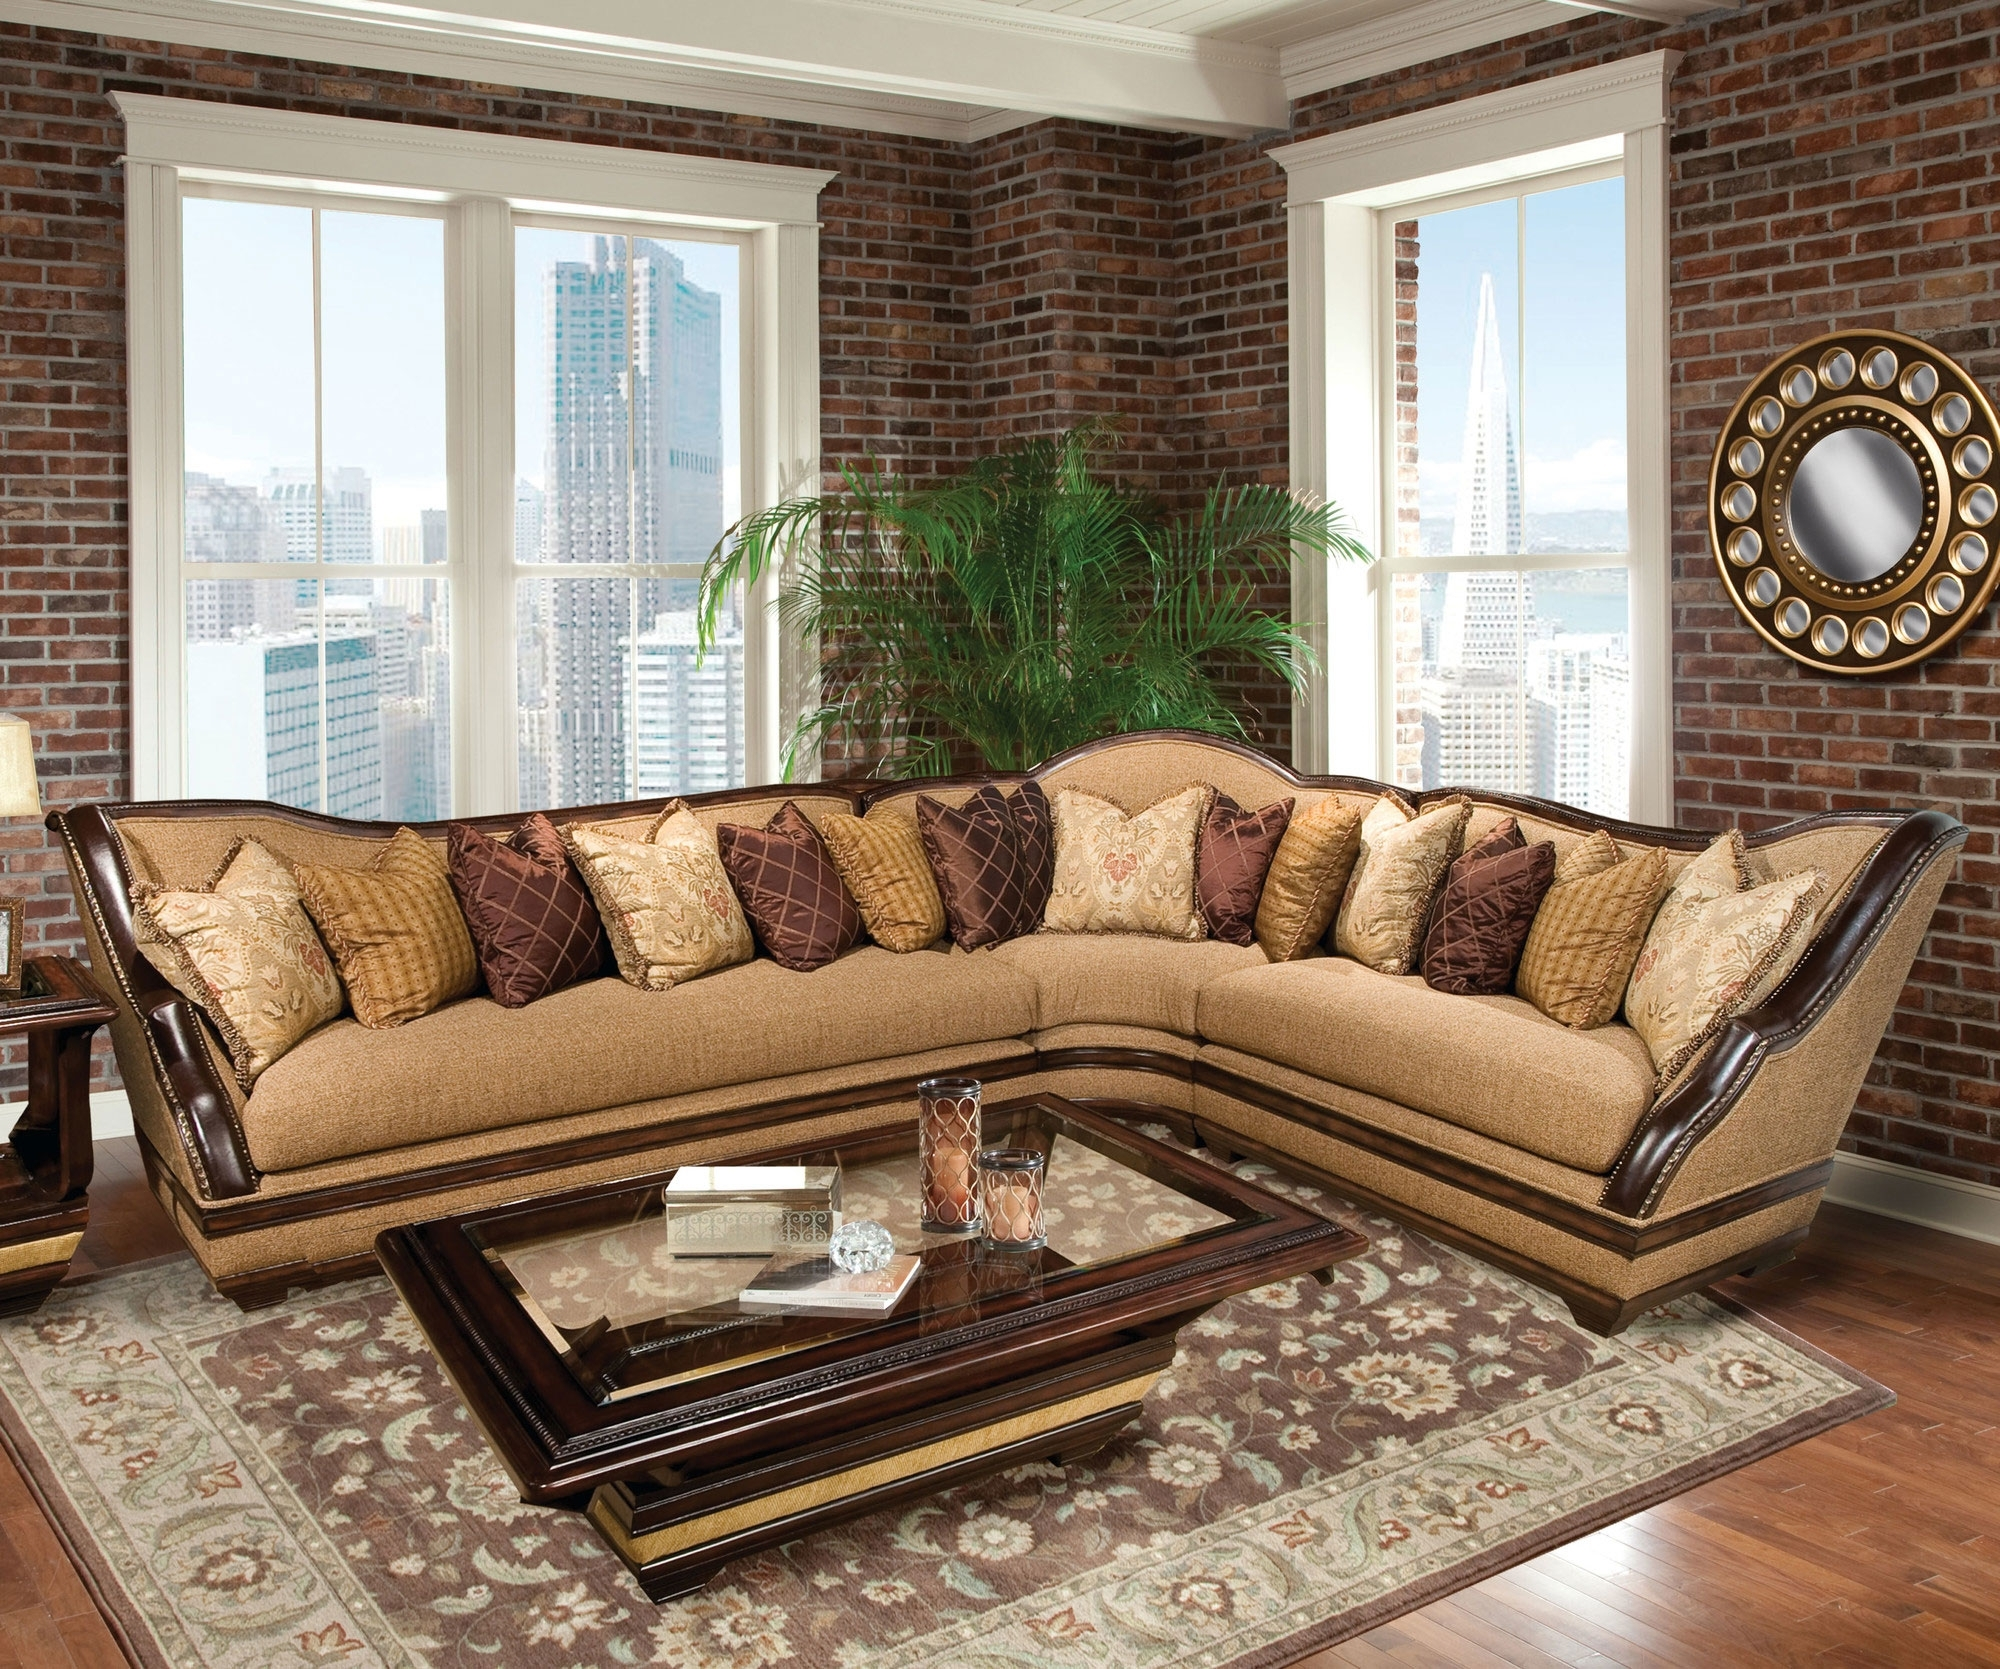 Most Popular Luxury Sectional Sofas With Regard To Benetti's Italia Beladonna Wood Trim Sectional Sofa Set The (View 11 of 15)